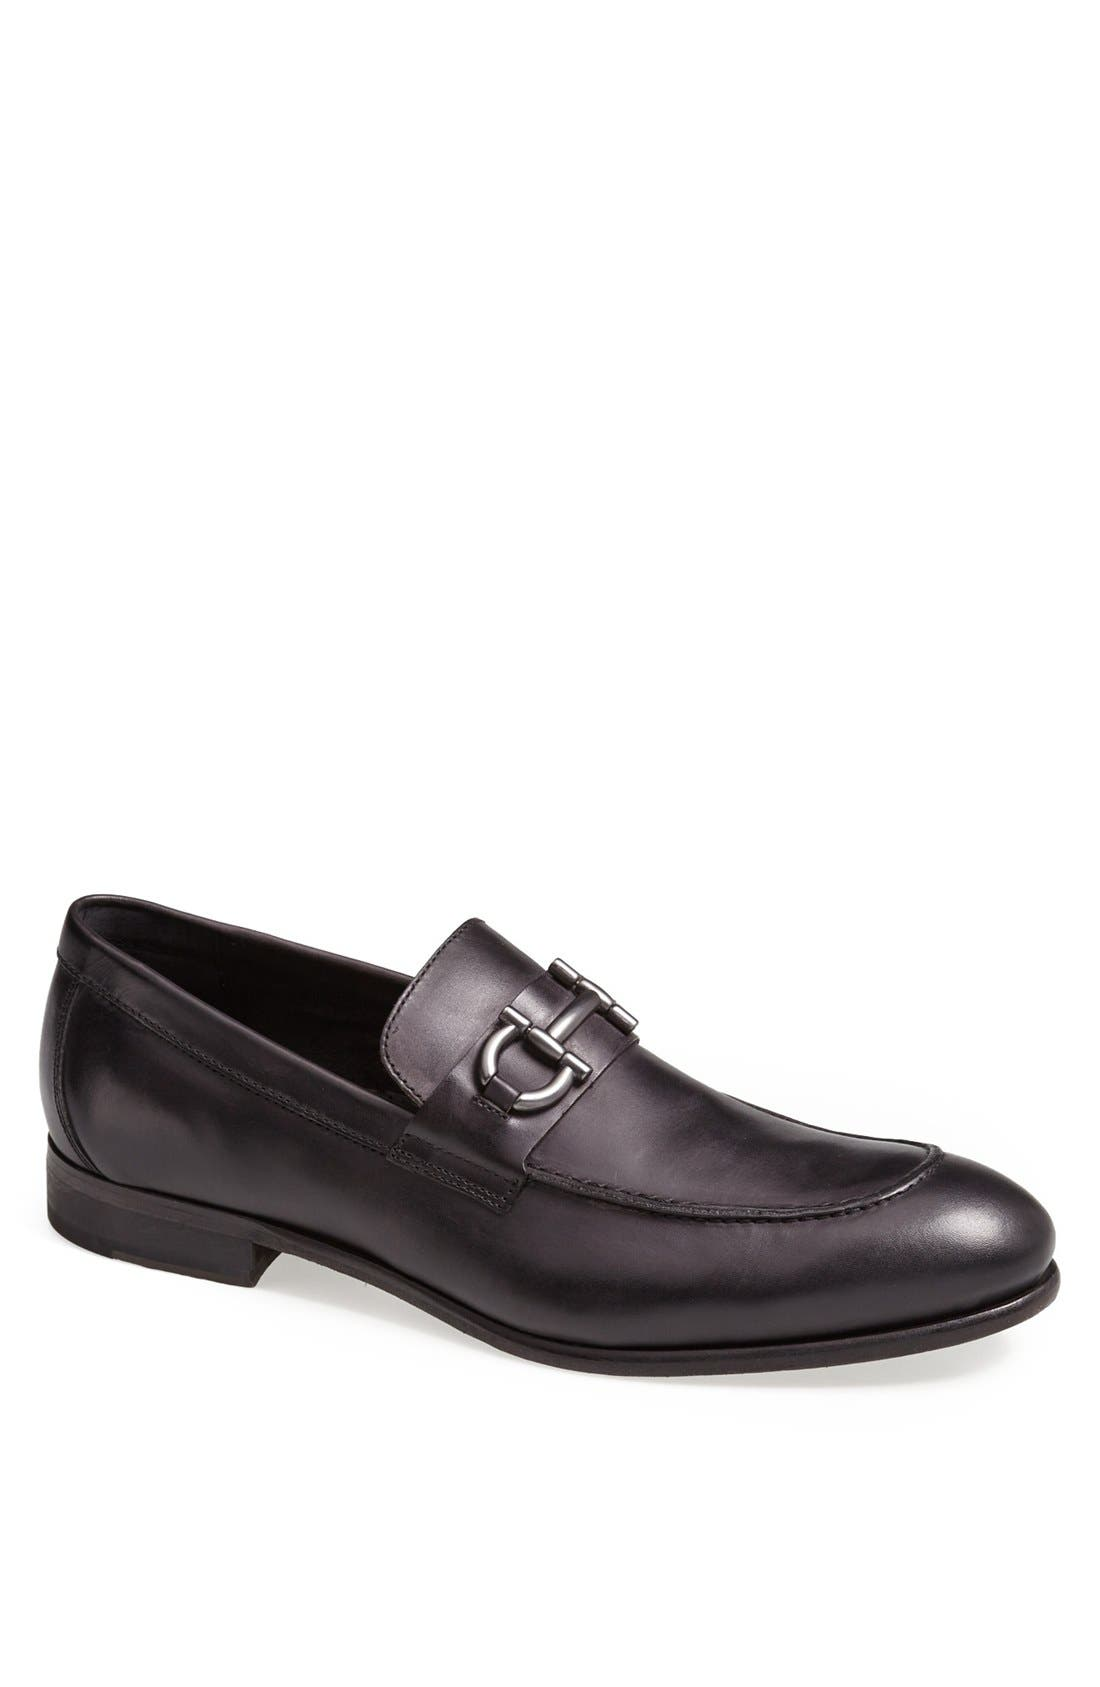 Main Image - Kenneth Cole New York 'Heat It Up' Bit Loafer